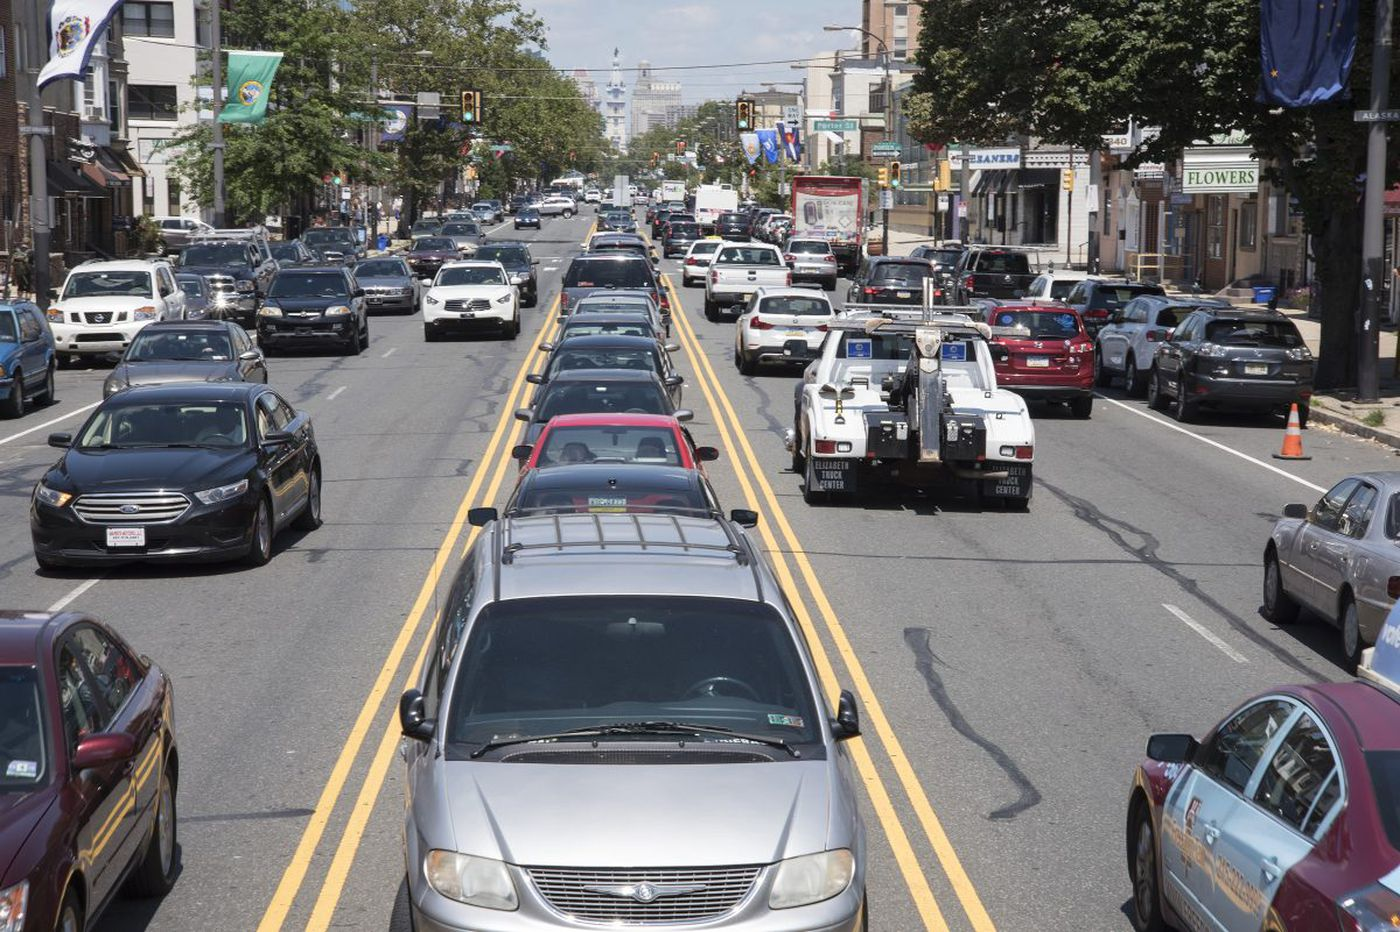 Median parking on South Broad Street is dangerous and must end | Opinion